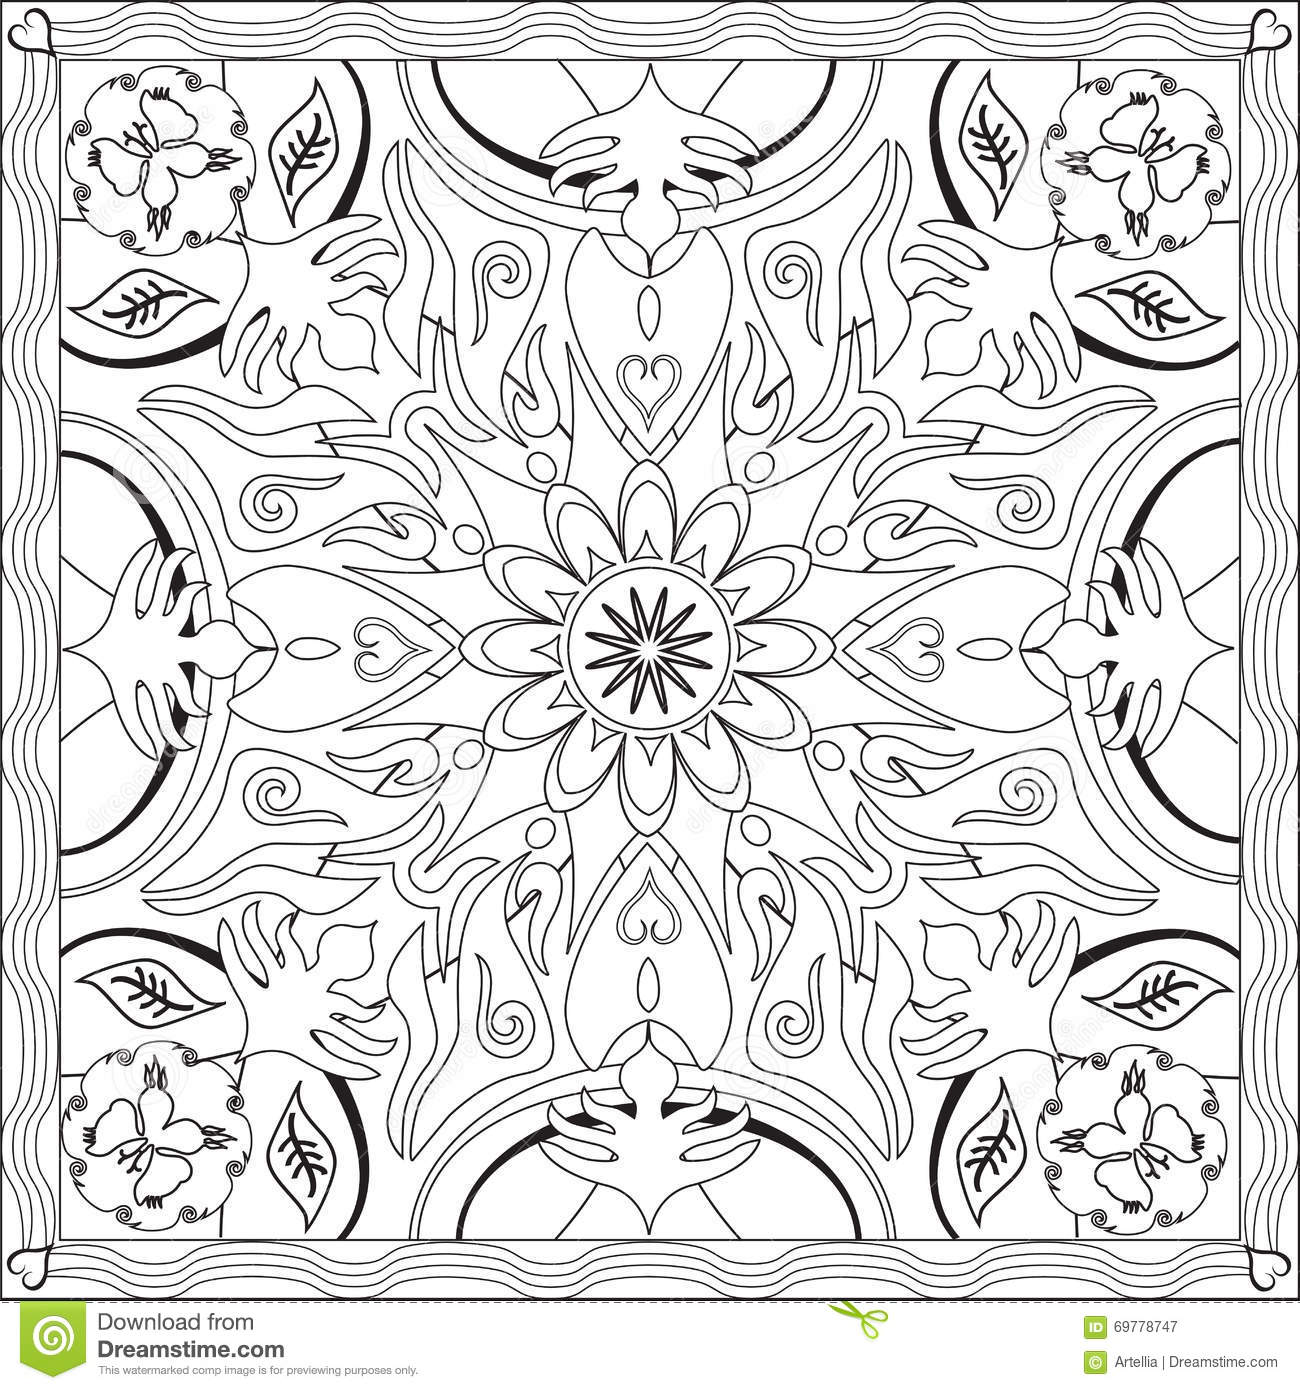 Coloring Page Book For Adults Square Format Mandala Flower Design ...